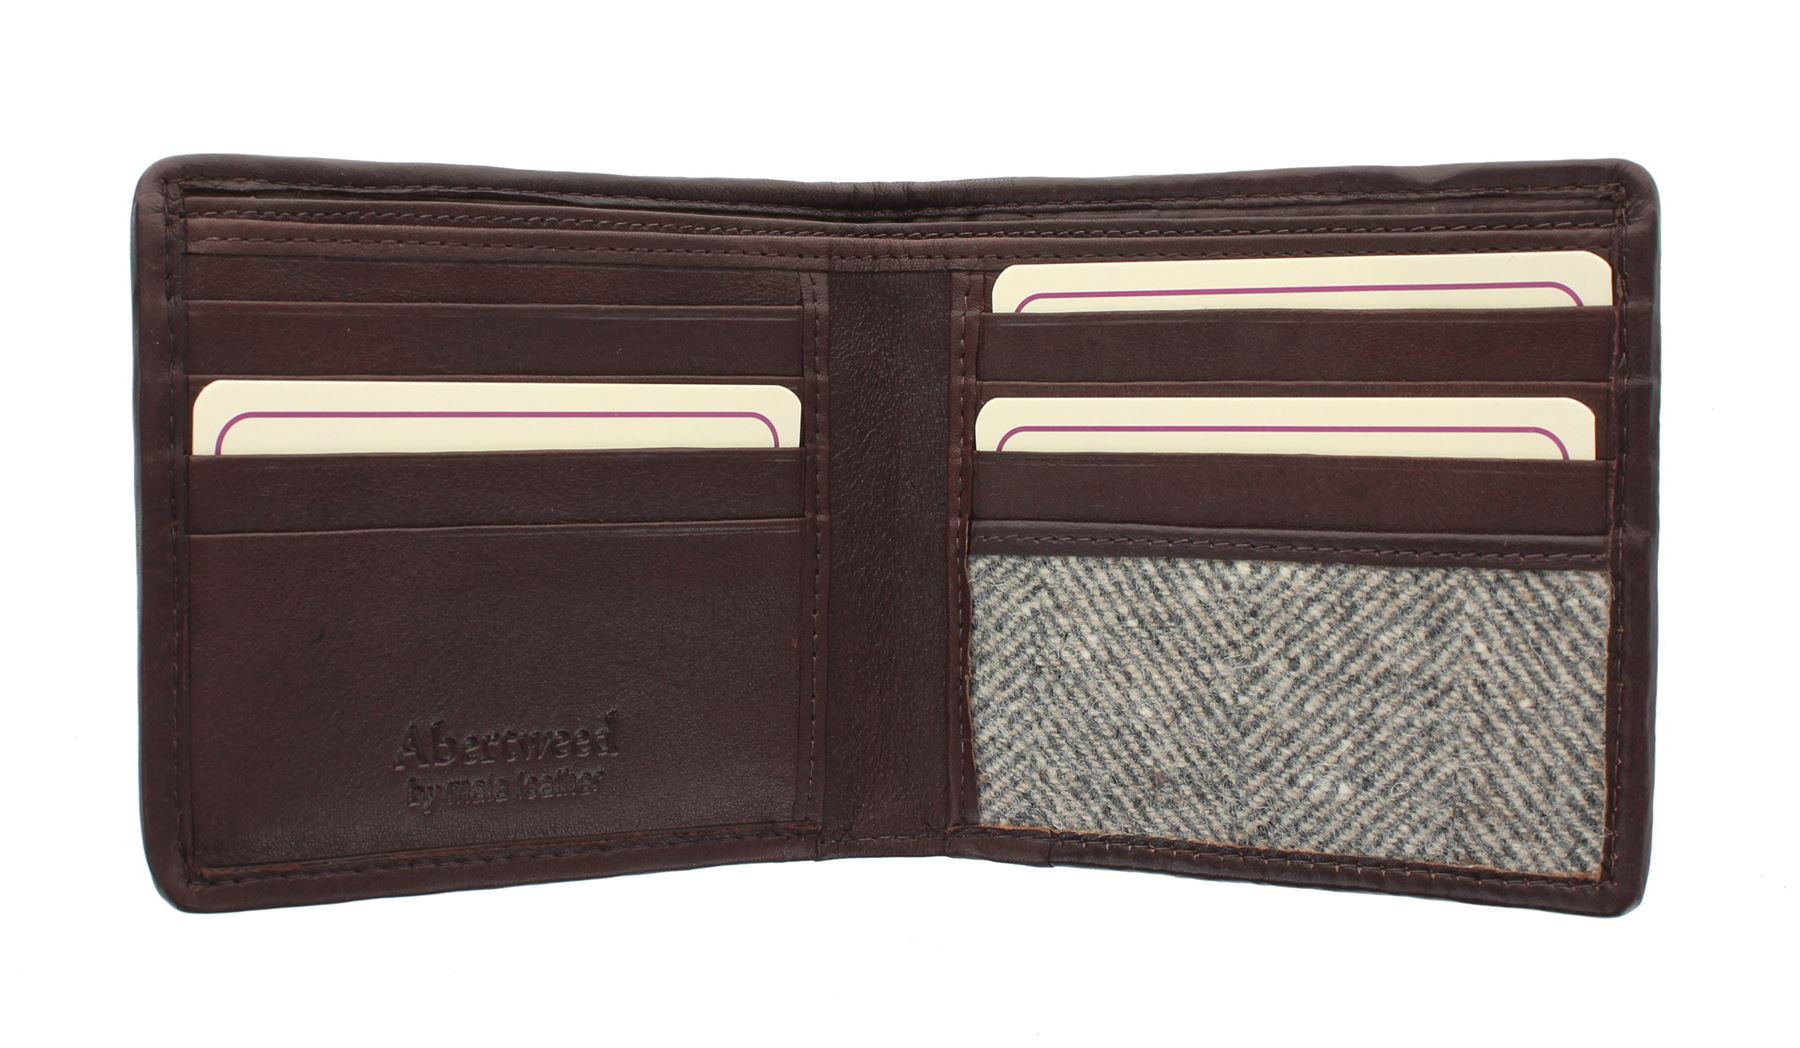 Mala Leather ABERTWEED Collection Leather & & & Tweed Bi-Fold Wallet 176_40  | Adoptieren